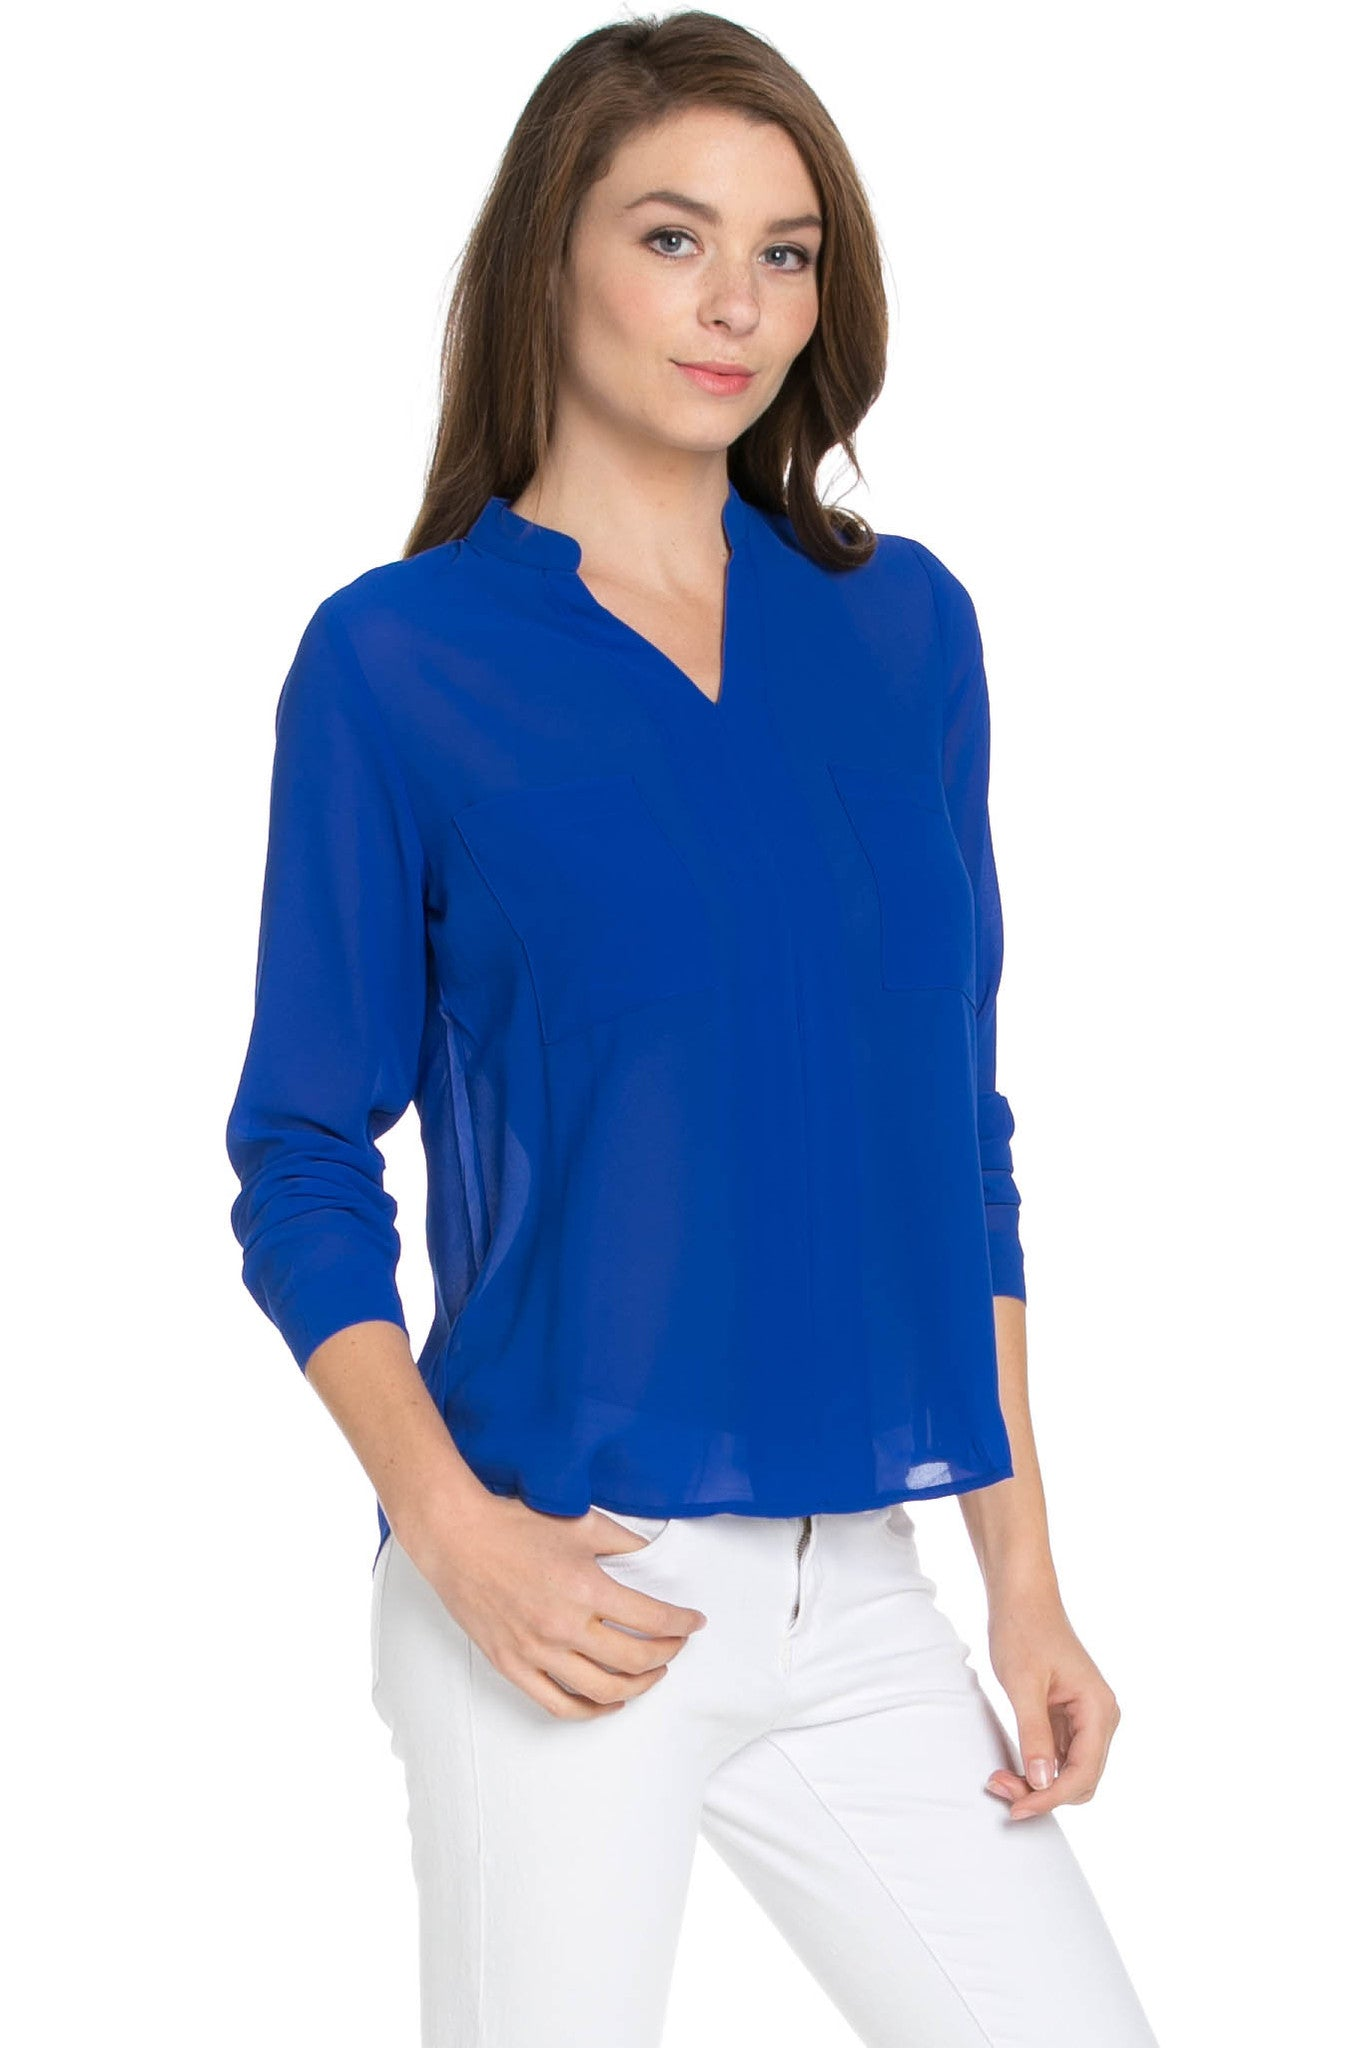 V-Neck Chiffon Blouse Dazzling Blue - Tops - My Yuccie - 4